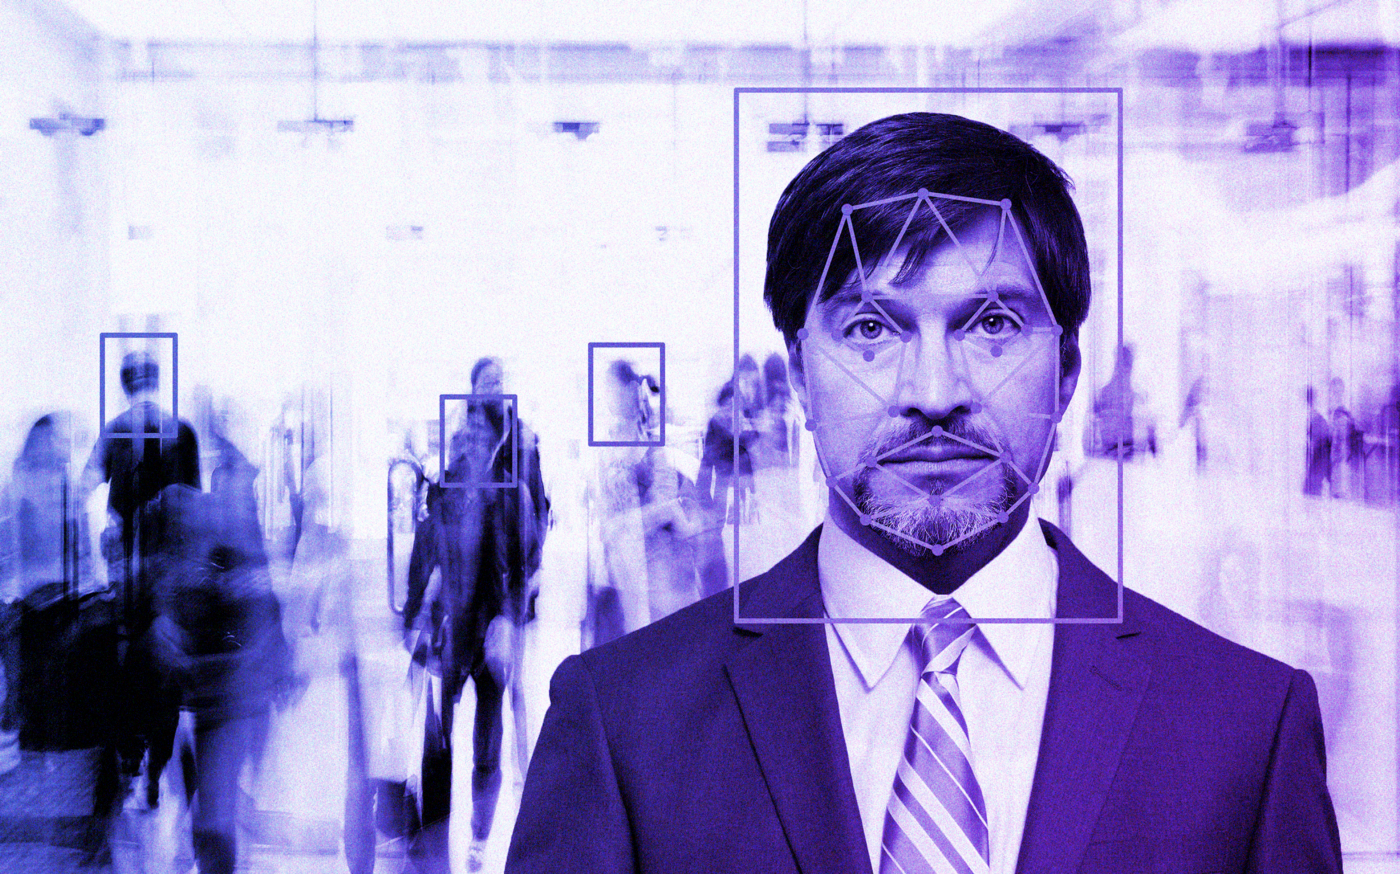 Illustration of facial recognition technology on a man in a suit.